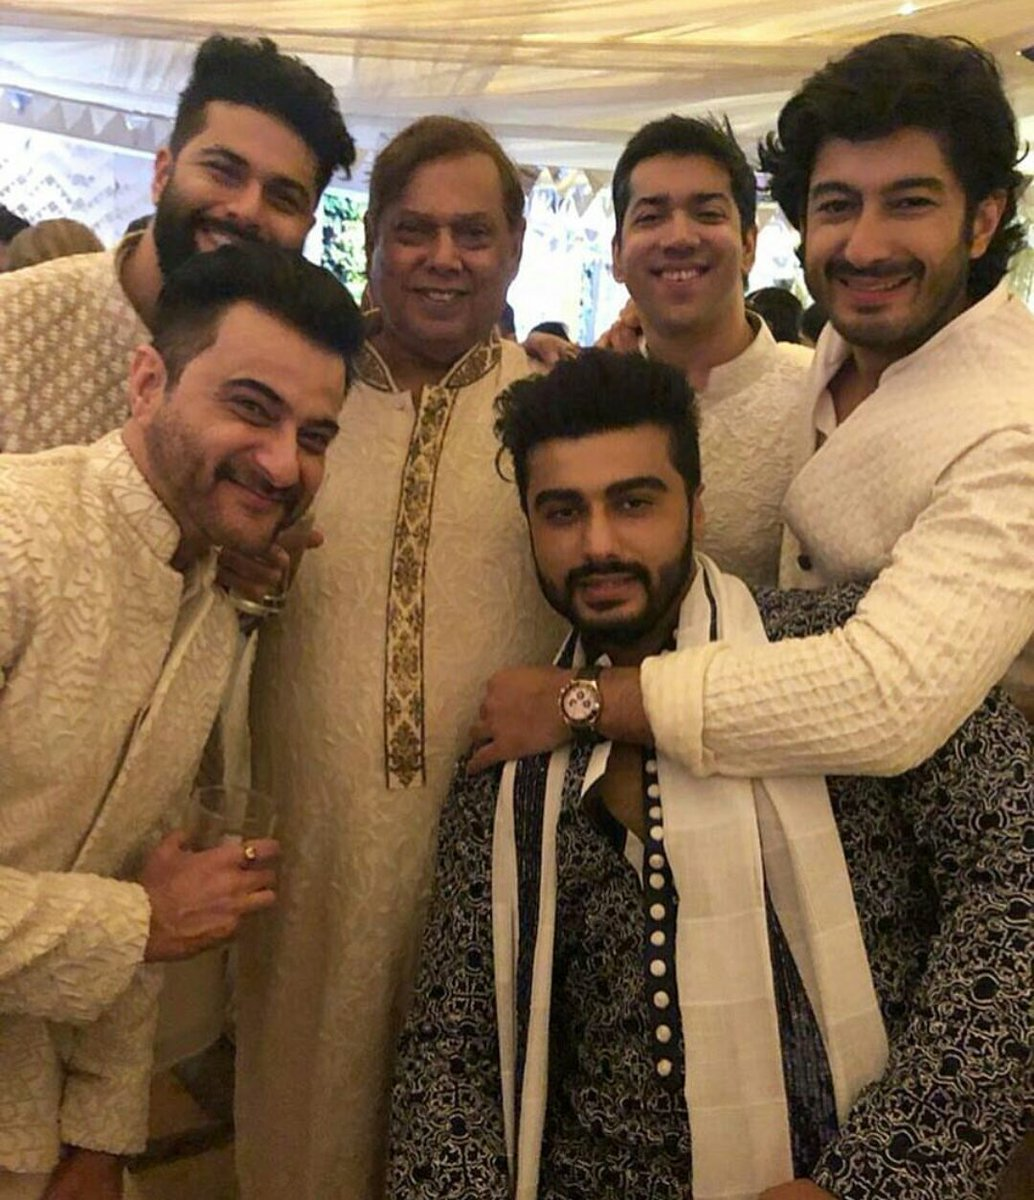 And comes the Kapoor boys clan spotted having a gala time during the Mehendi ceremony.